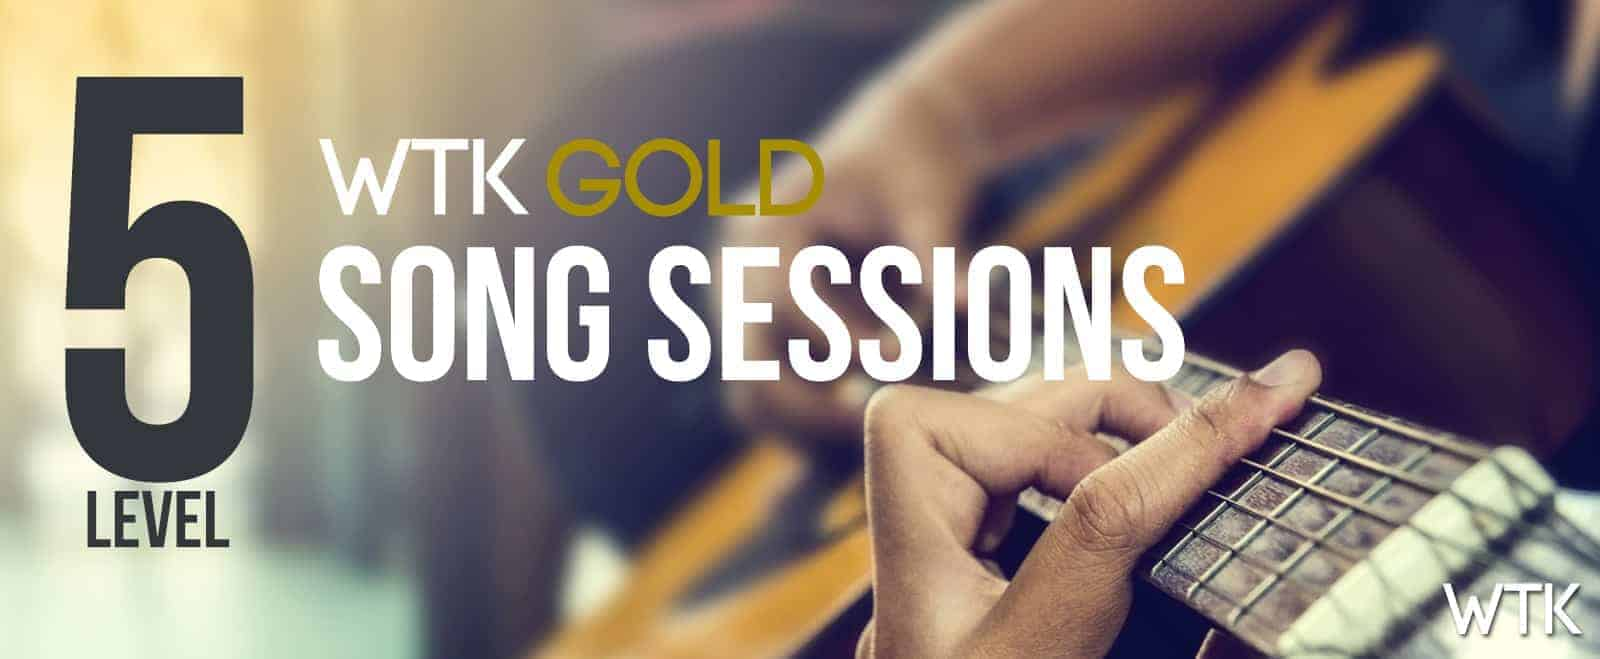 WTK GOLD Song Sessions Level 5